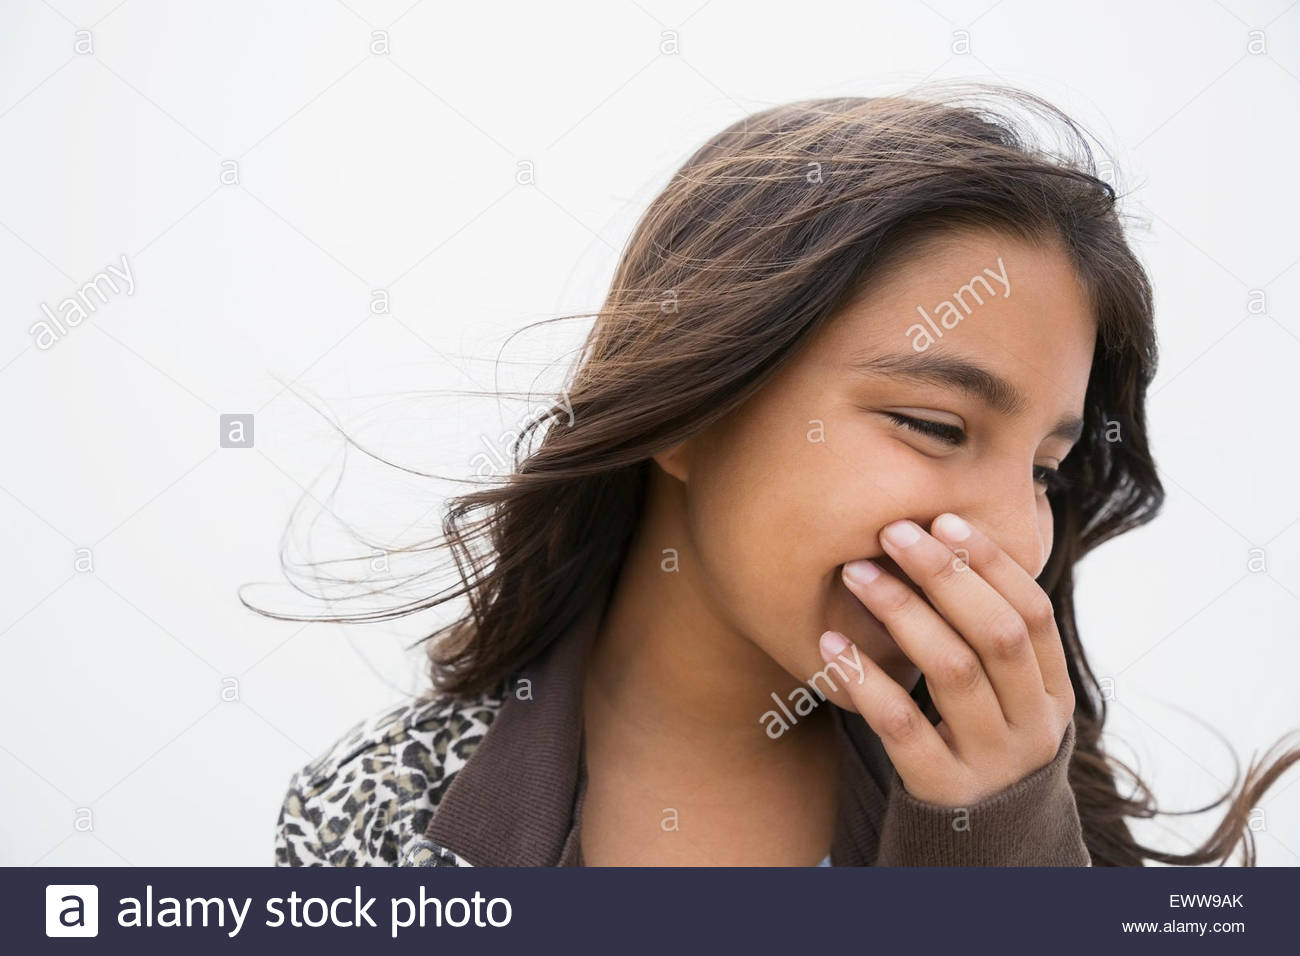 Brunette girl laughing covering mouth with hand - Stock Image